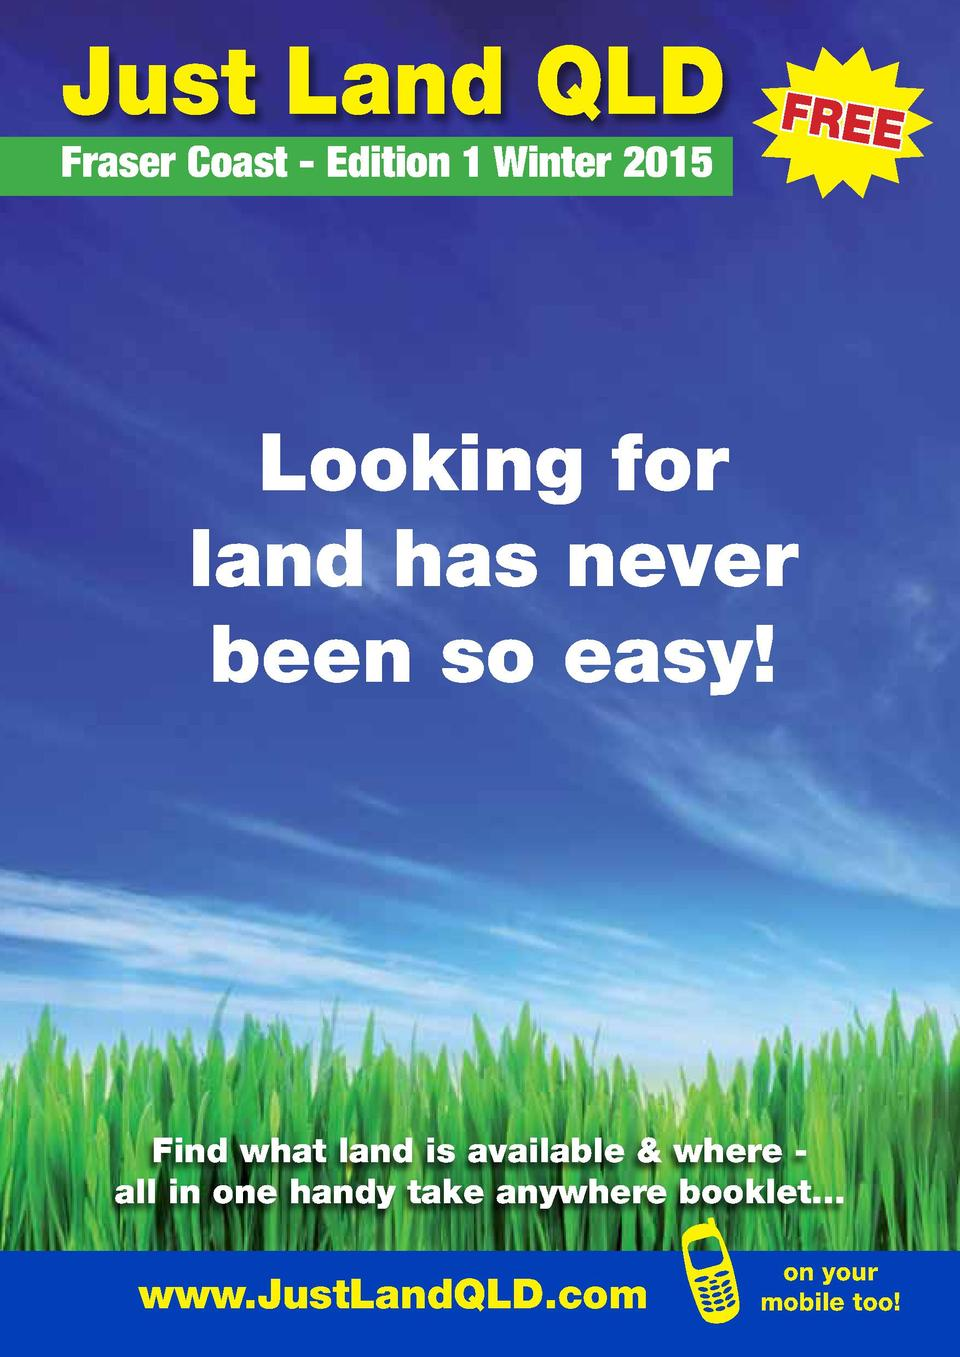 Just Land QLD  Fraser Coast - Edition 1 Winter 2015  FREE  Looking for land has never been so easy   Find what land is ava...